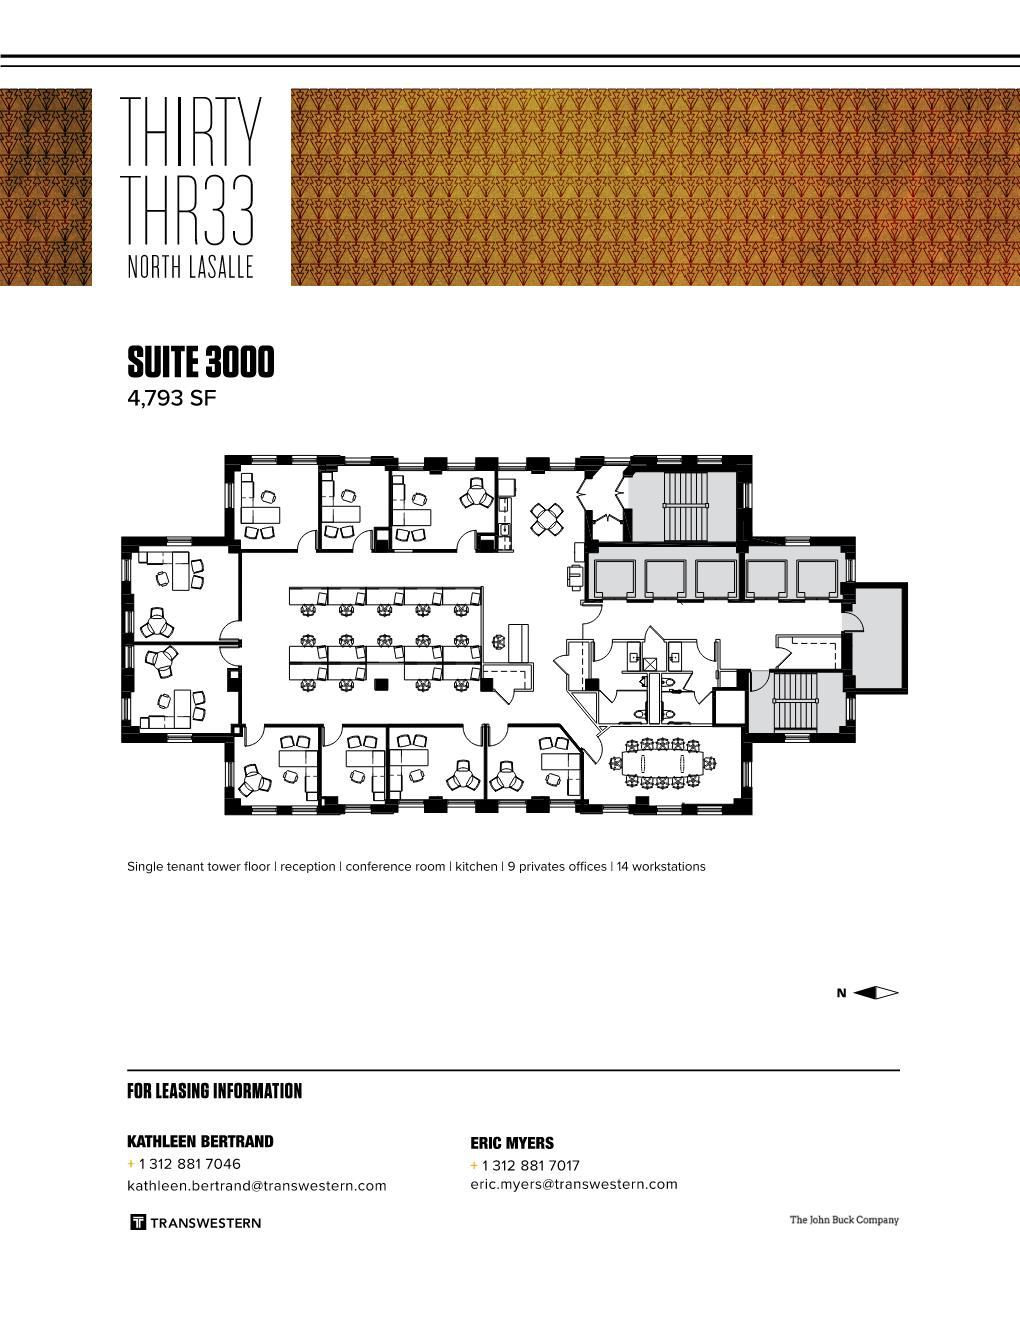 Link to 33 N LaSalle Floorplans